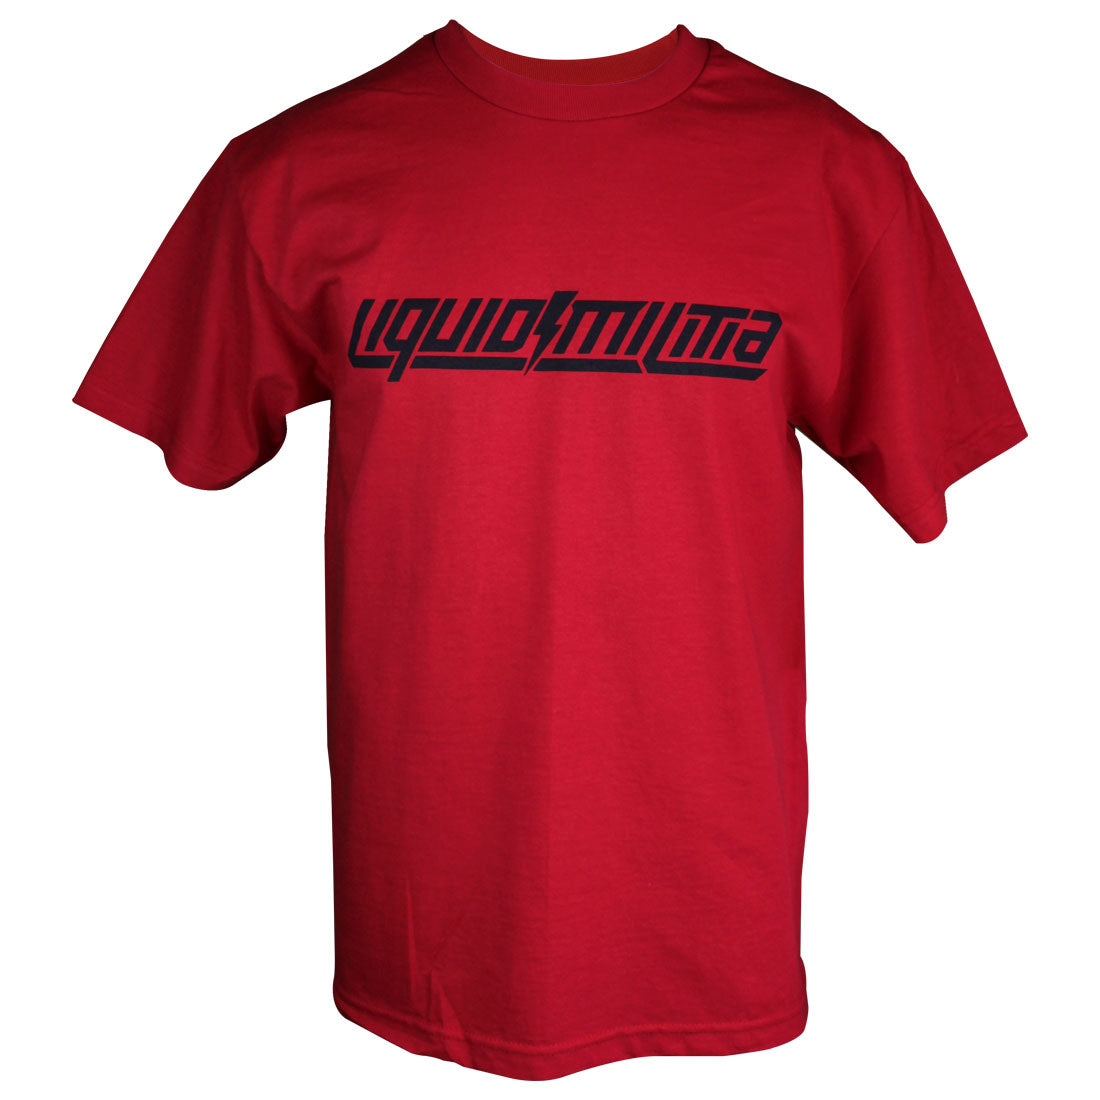 Foundation Mens Standard Tee in Red - Front View